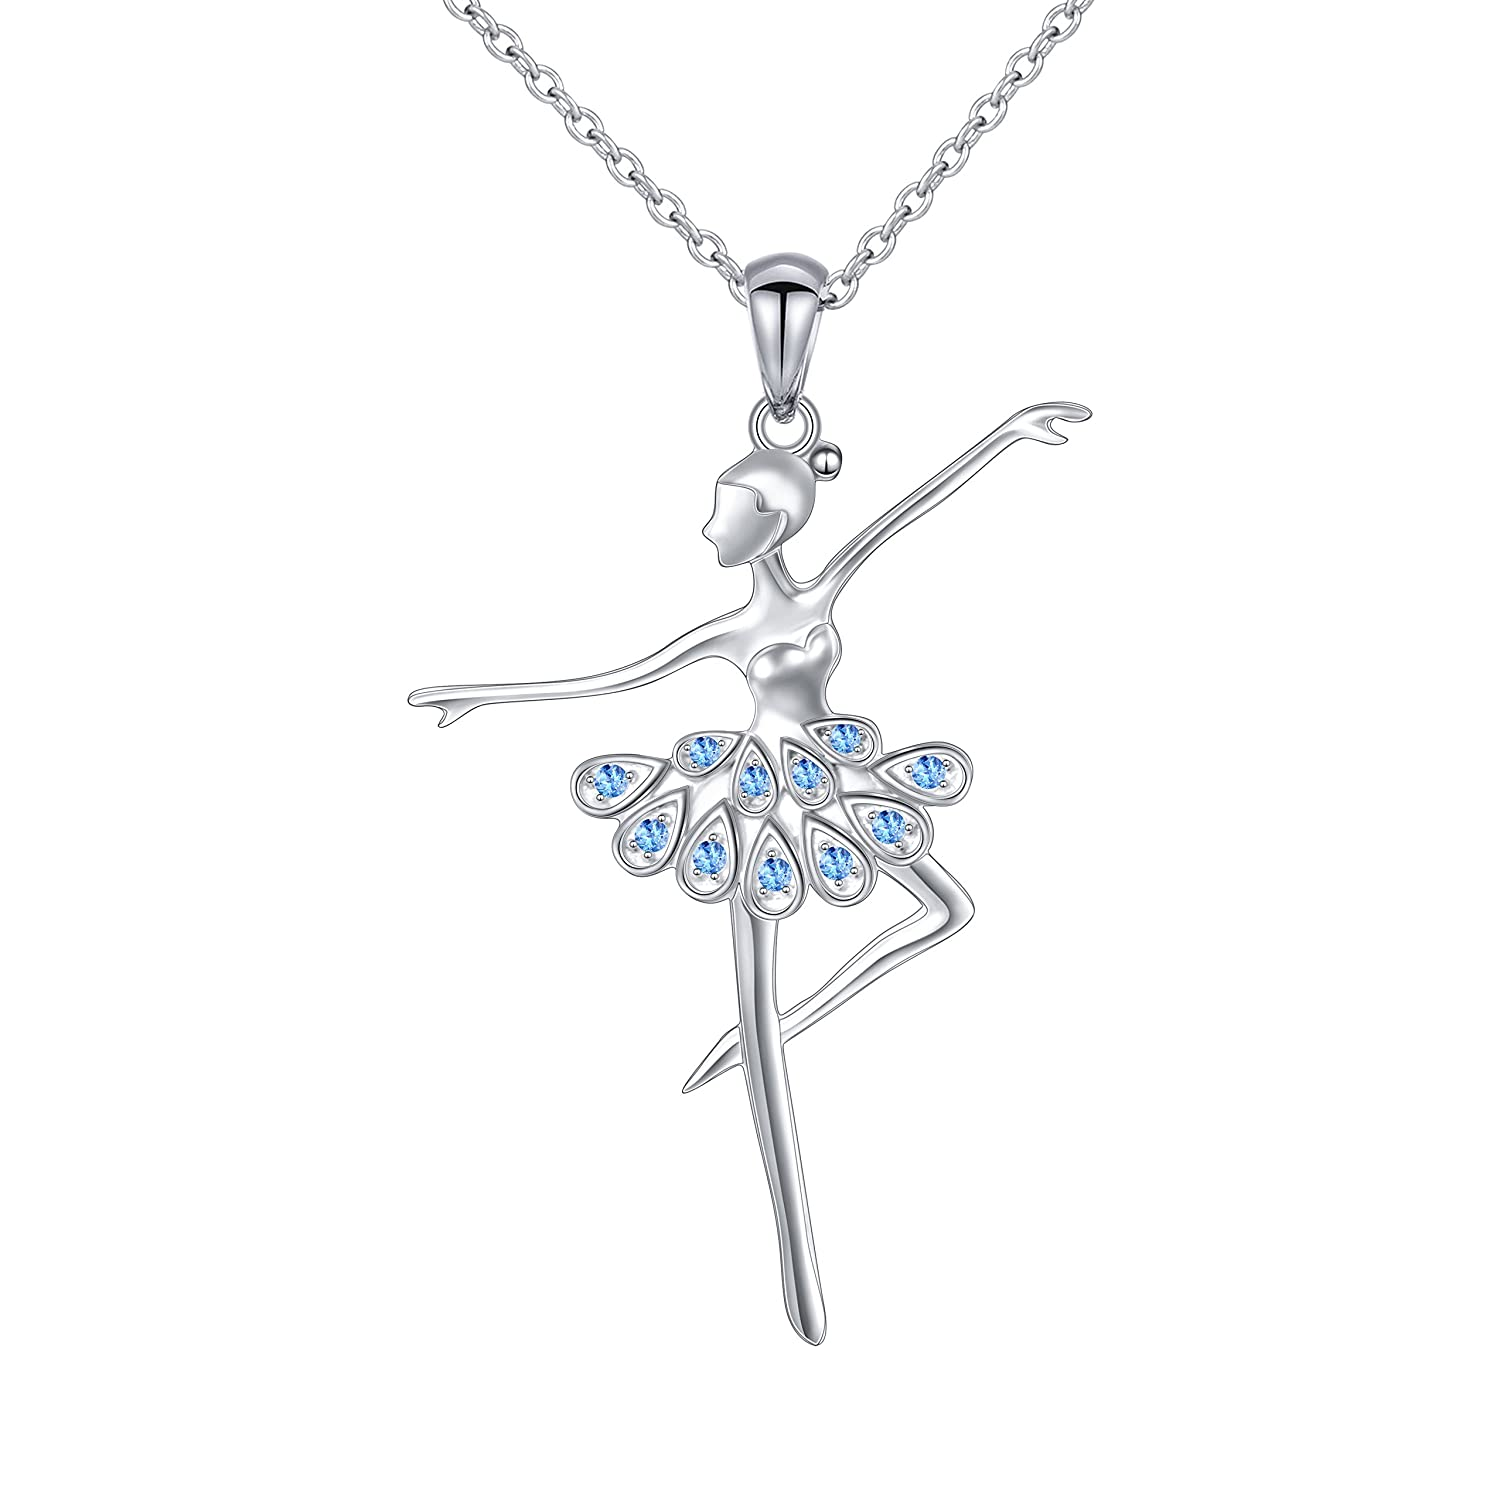 925 Sterling Silver Cubic Zirconia Ballet Dancer Necklace Gift for Women Girls,18